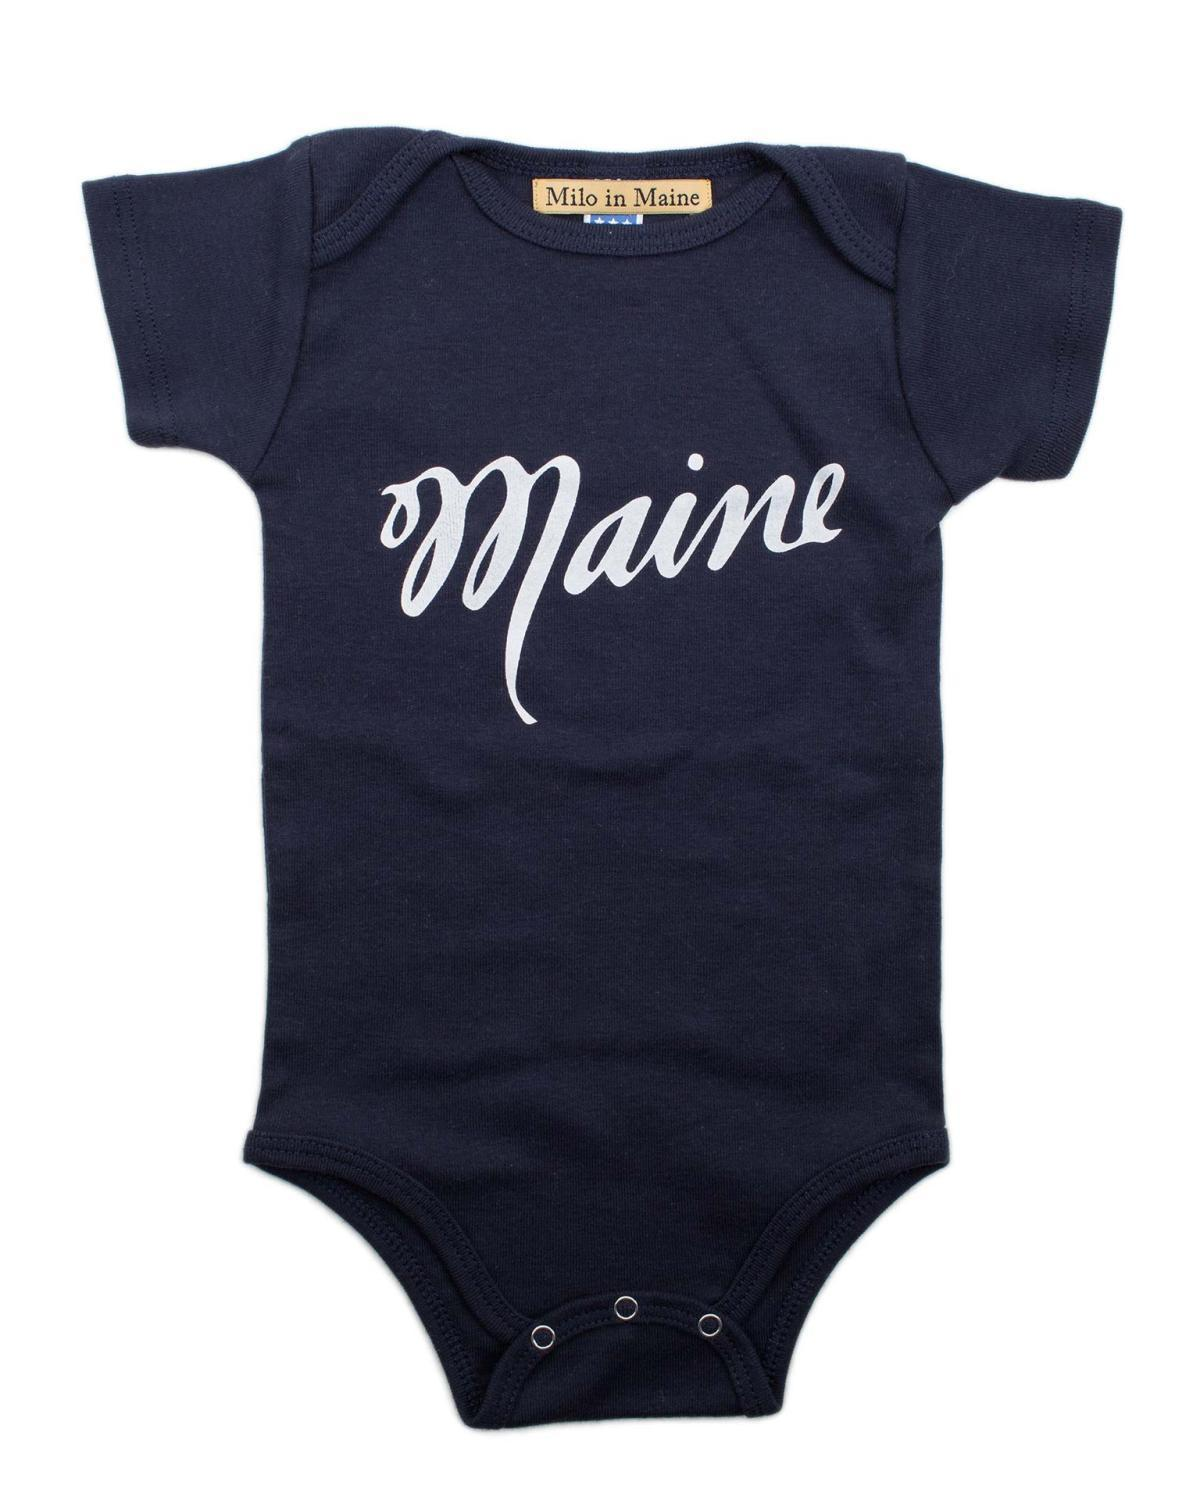 Little milo in maine baby boy 3-6 maine onesie in navy + white